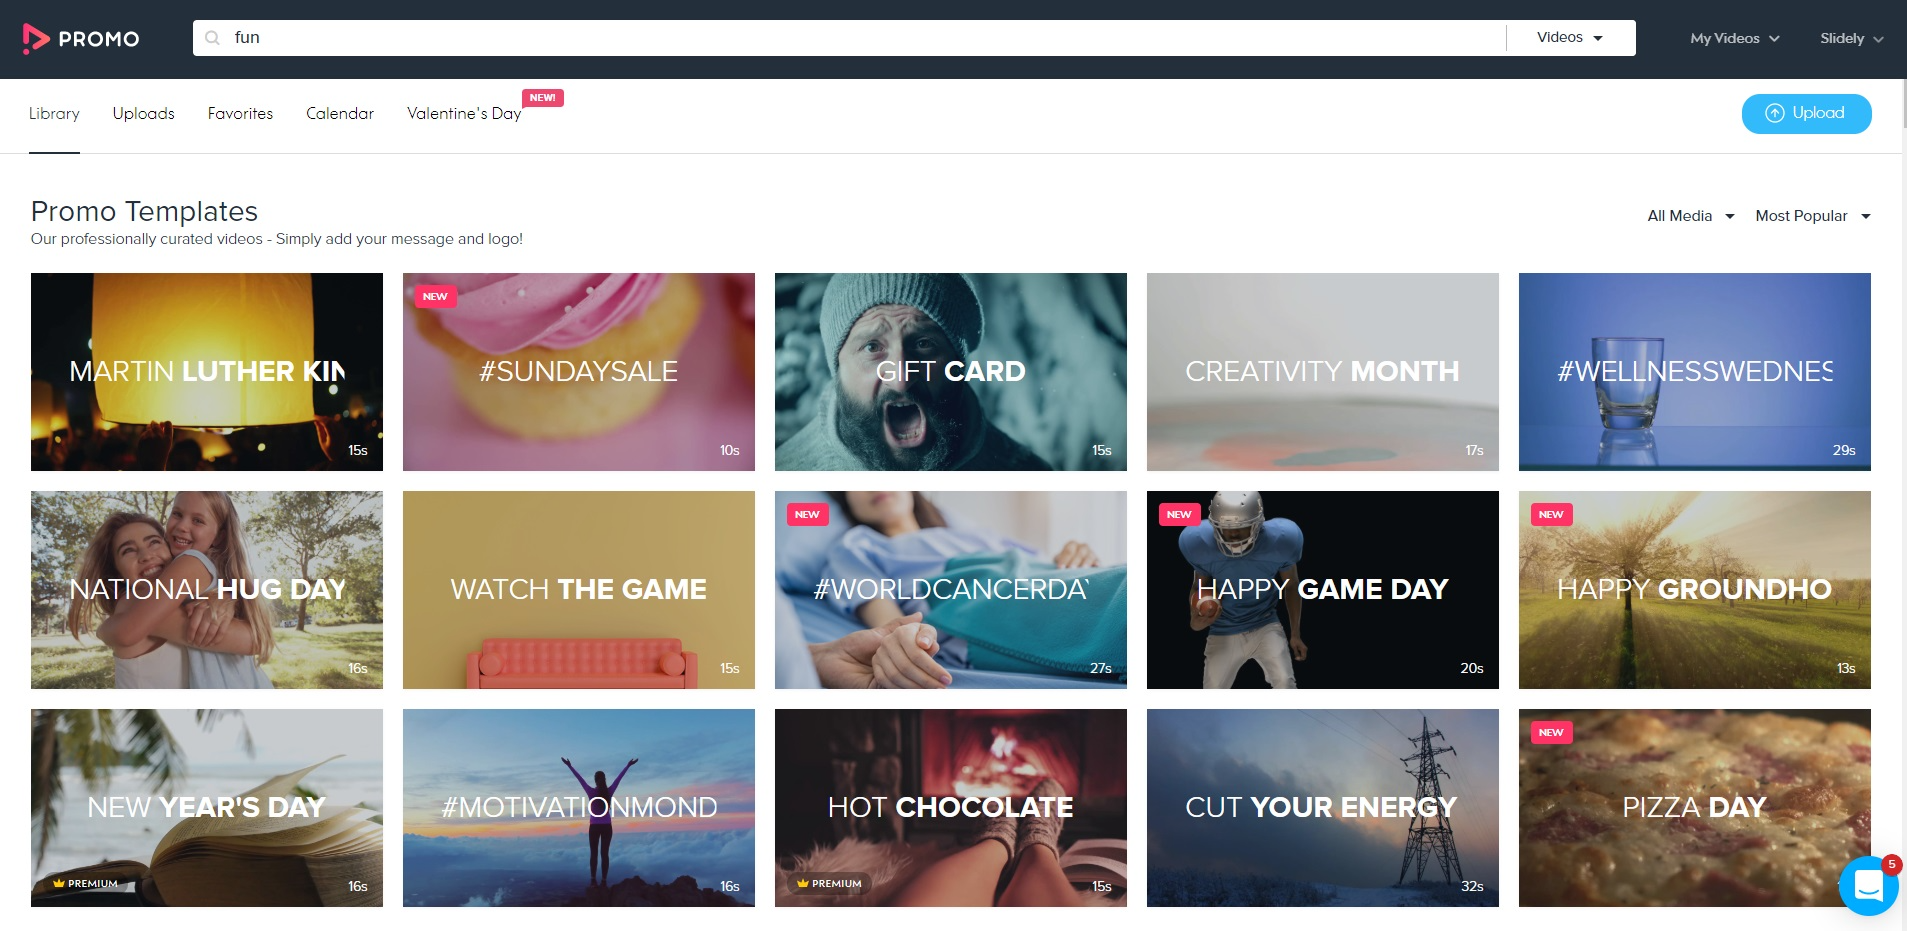 Promo.com Software - Choose from Promo's selection of over 15 million video clips and templates.